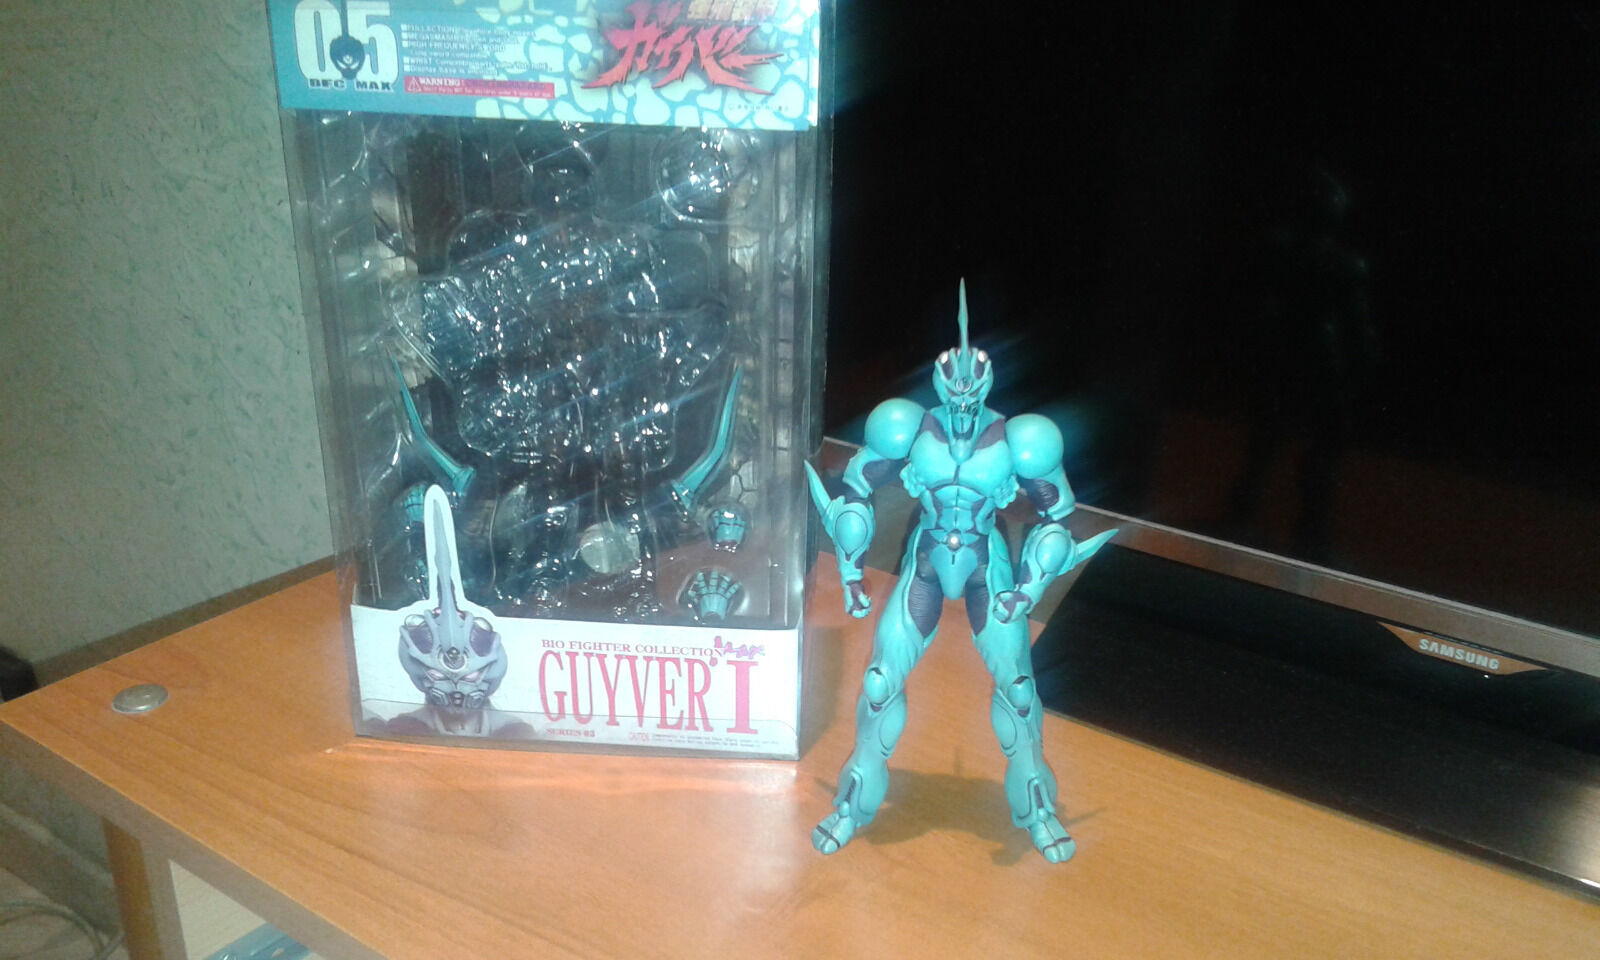 Guyver I  BiocombatienteCollection Max Factory BFC05